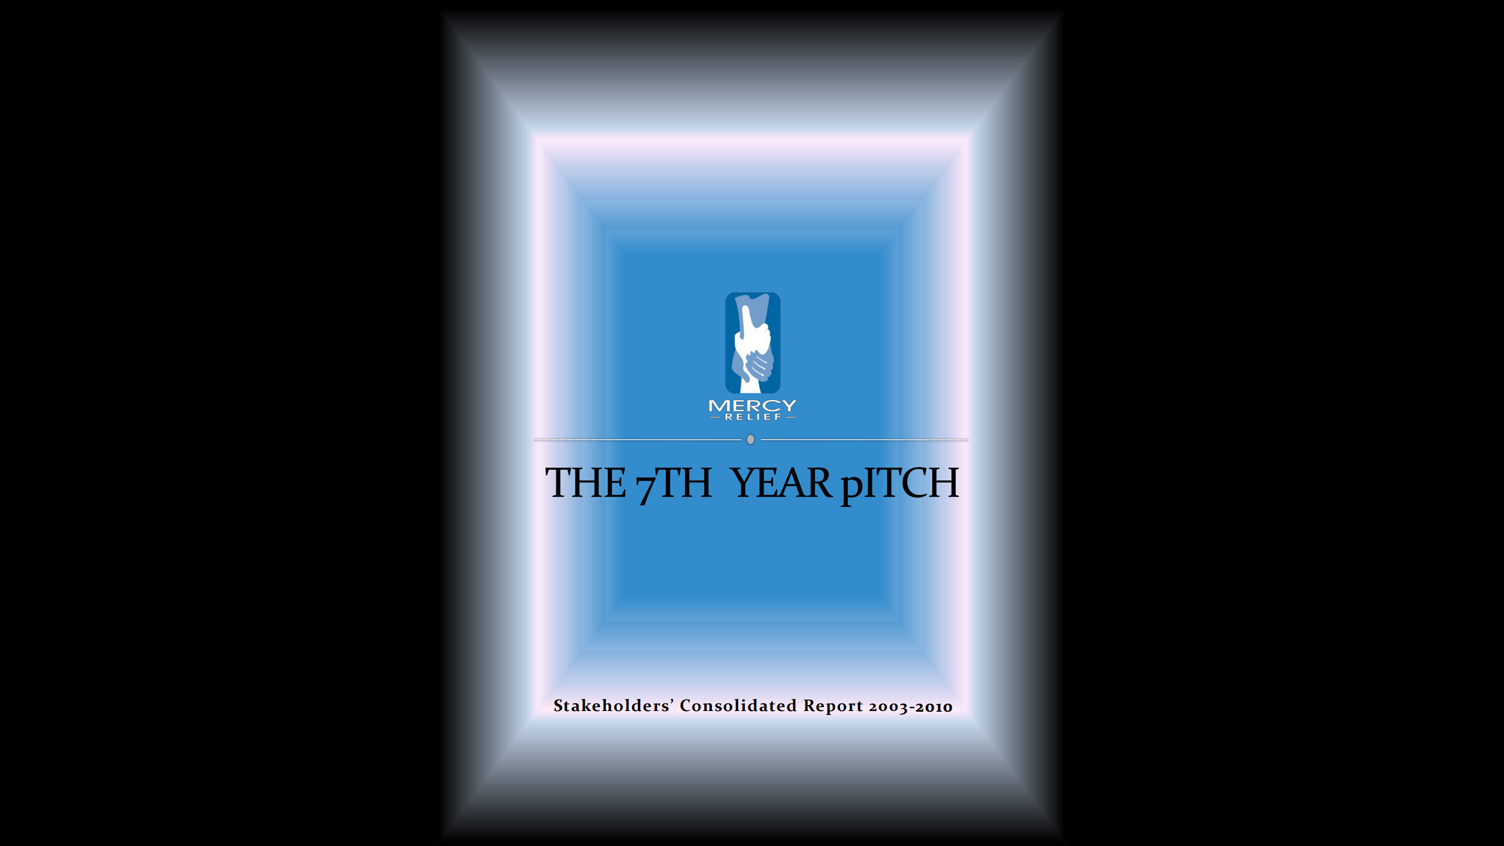 7th Year Pitch, 2010